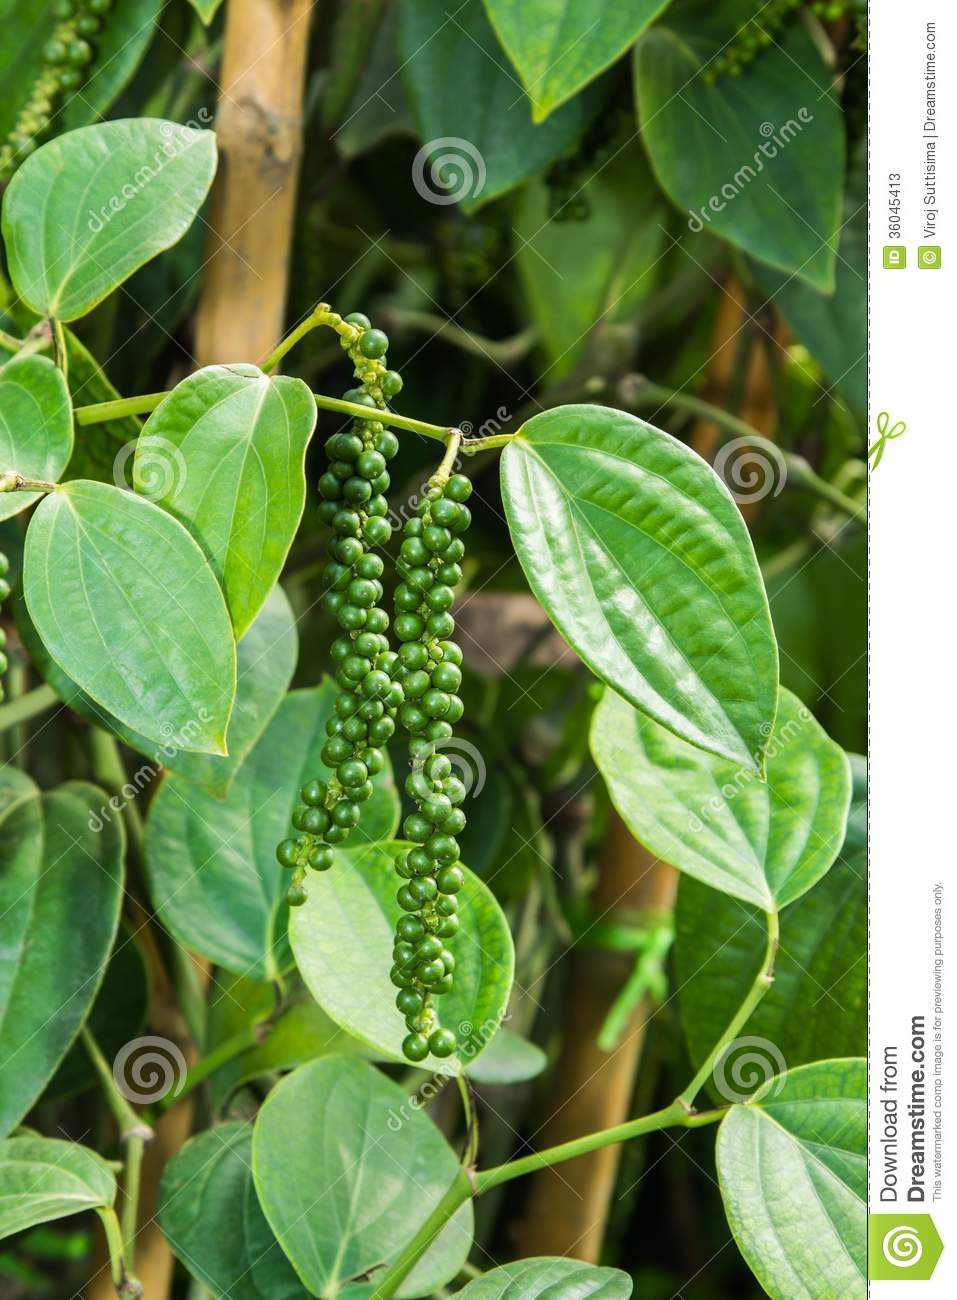 Pepper tree stock image. Image of natural, farm, flavoring - 36045413